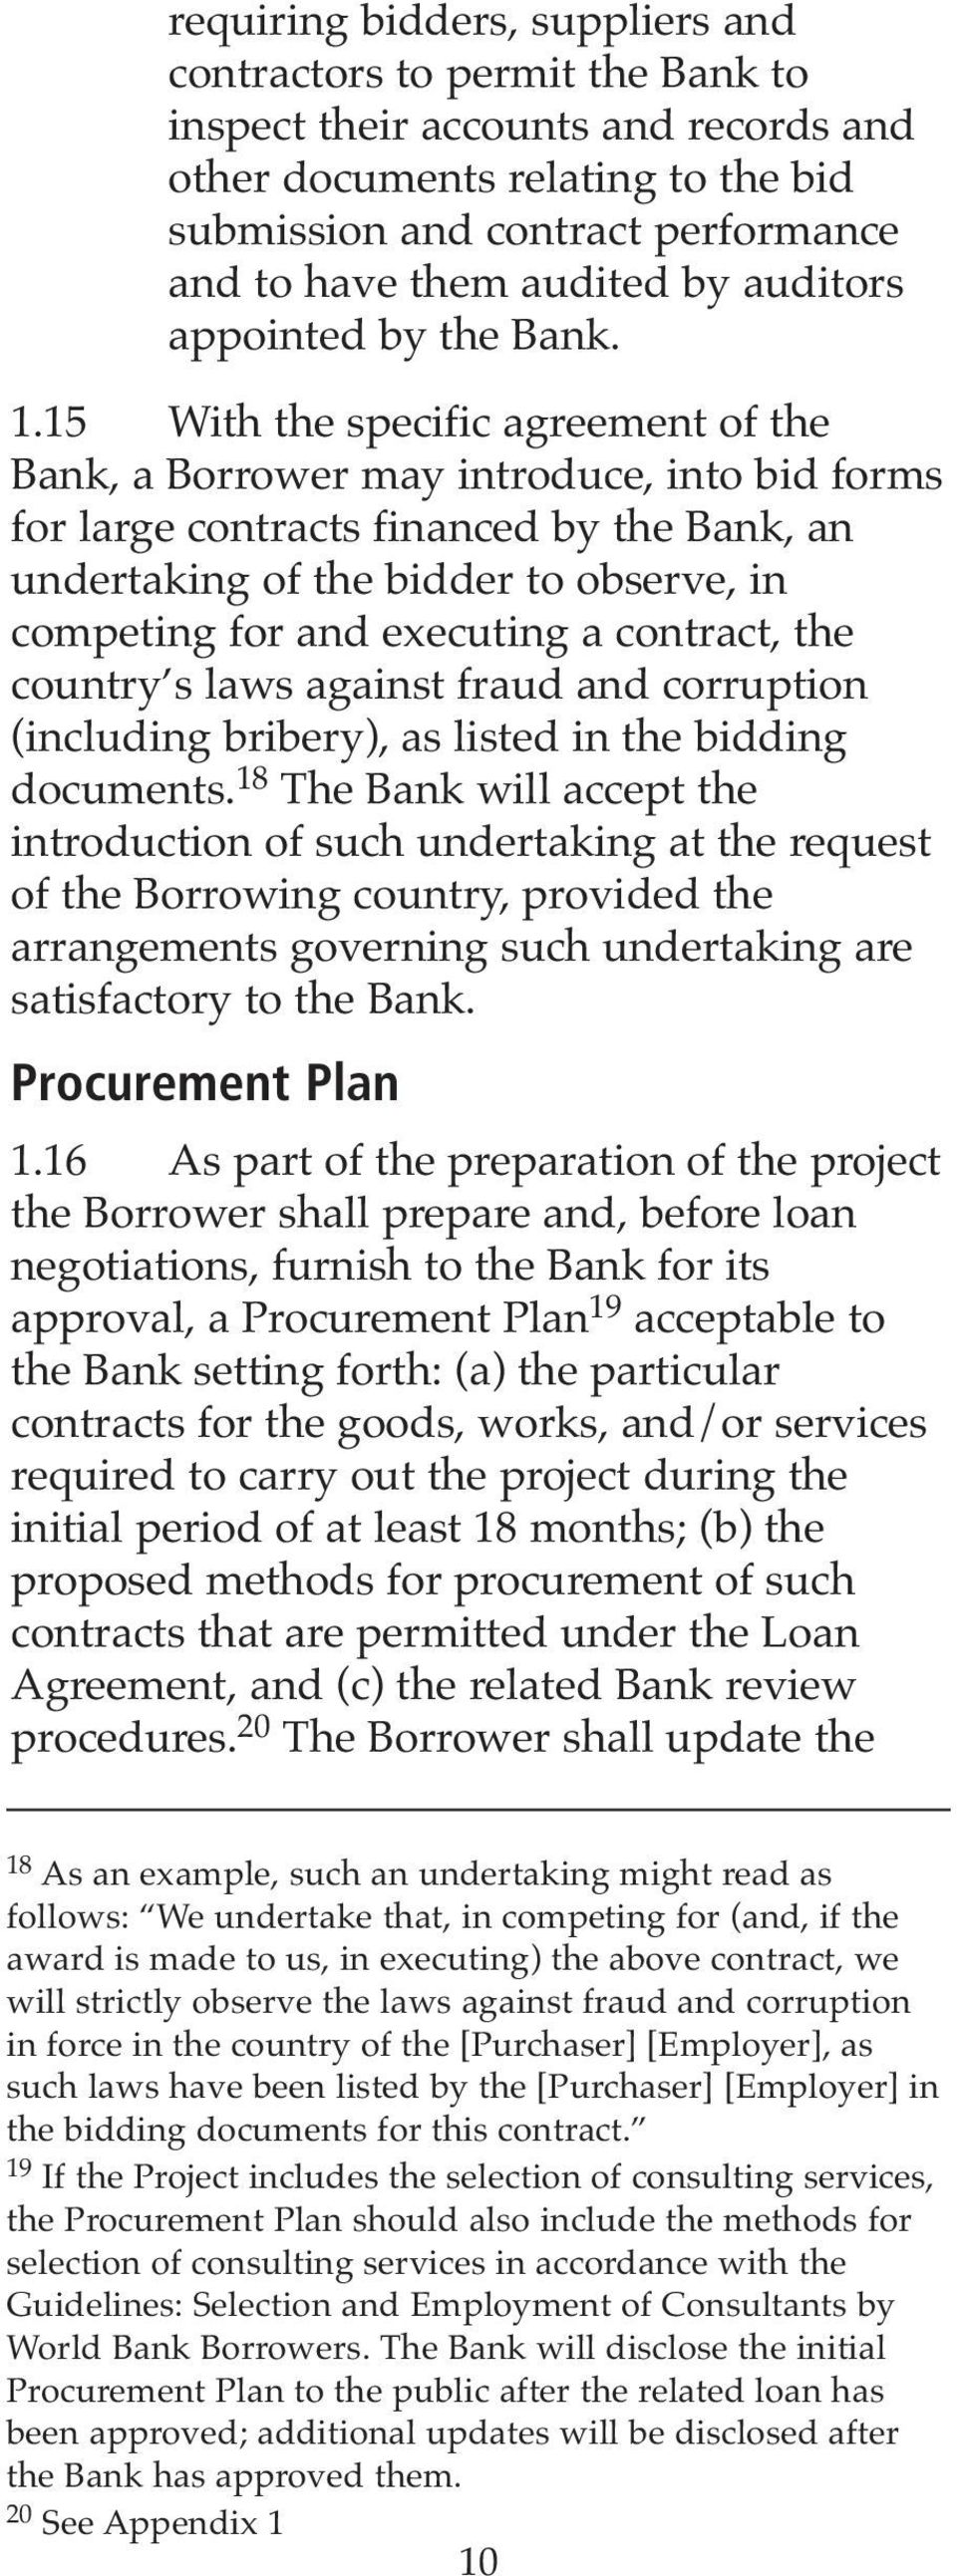 15 With the specific agreement of the Bank, a Borrower may introduce, into bid forms for large contracts financed by the Bank, an undertaking of the bidder to observe, in competing for and executing